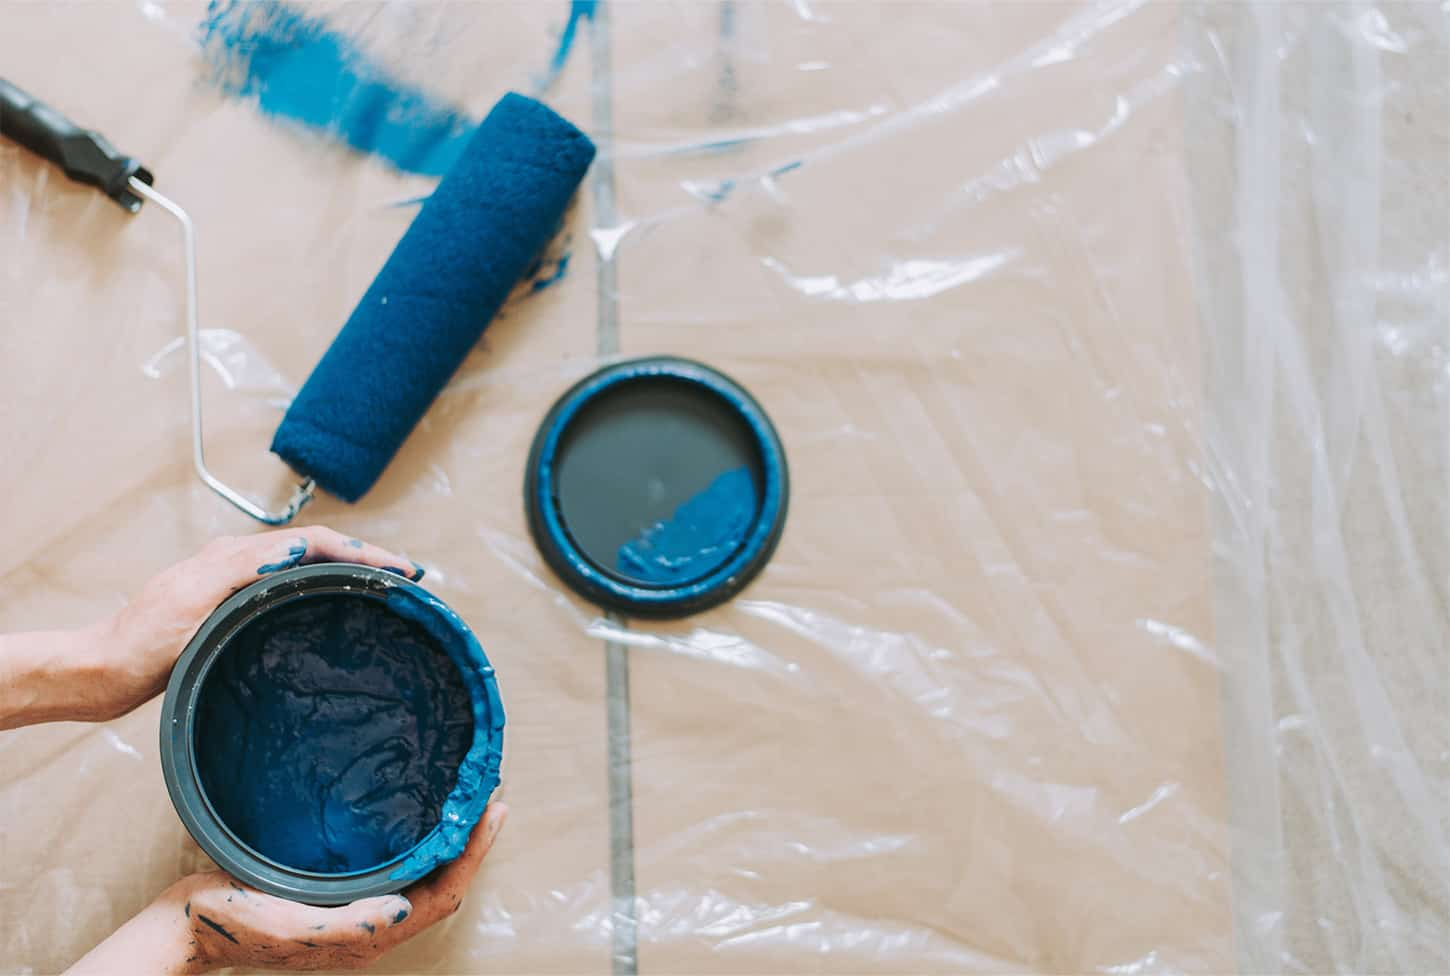 Picture of painting supplies